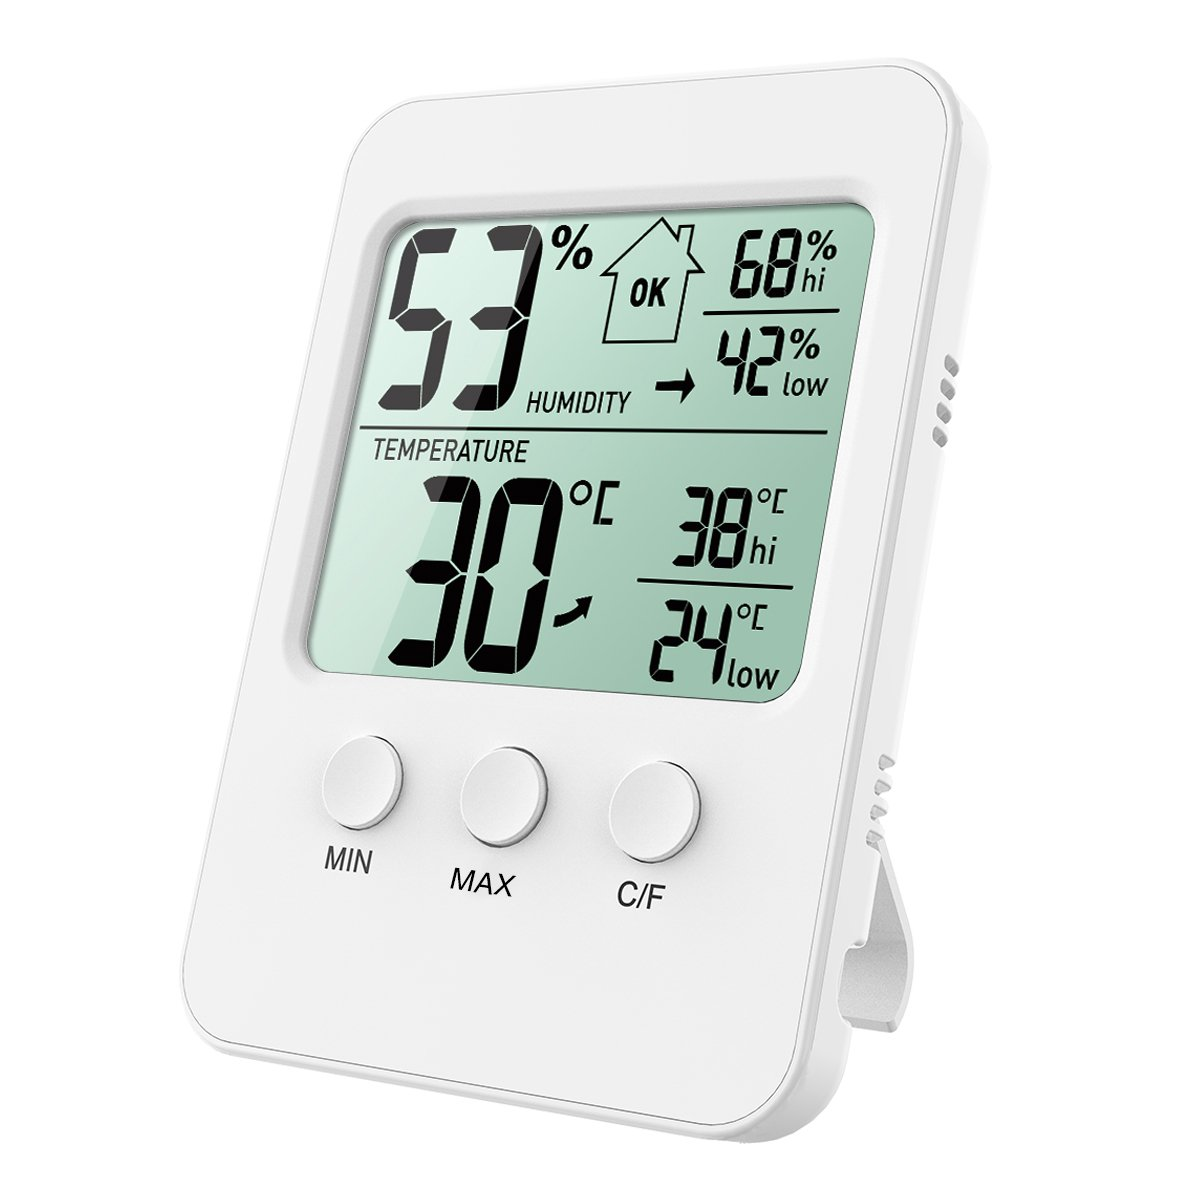 ORIA Digital Hygrometer Thermometer, Indoor Thermometer Humidity Monitor, Temperature Humidity Gauge Meter, with LCD Screen, MIN/MAX Records, ℃/℉ Switch, for Warehouse, Home, Car, Office, Greenhouse